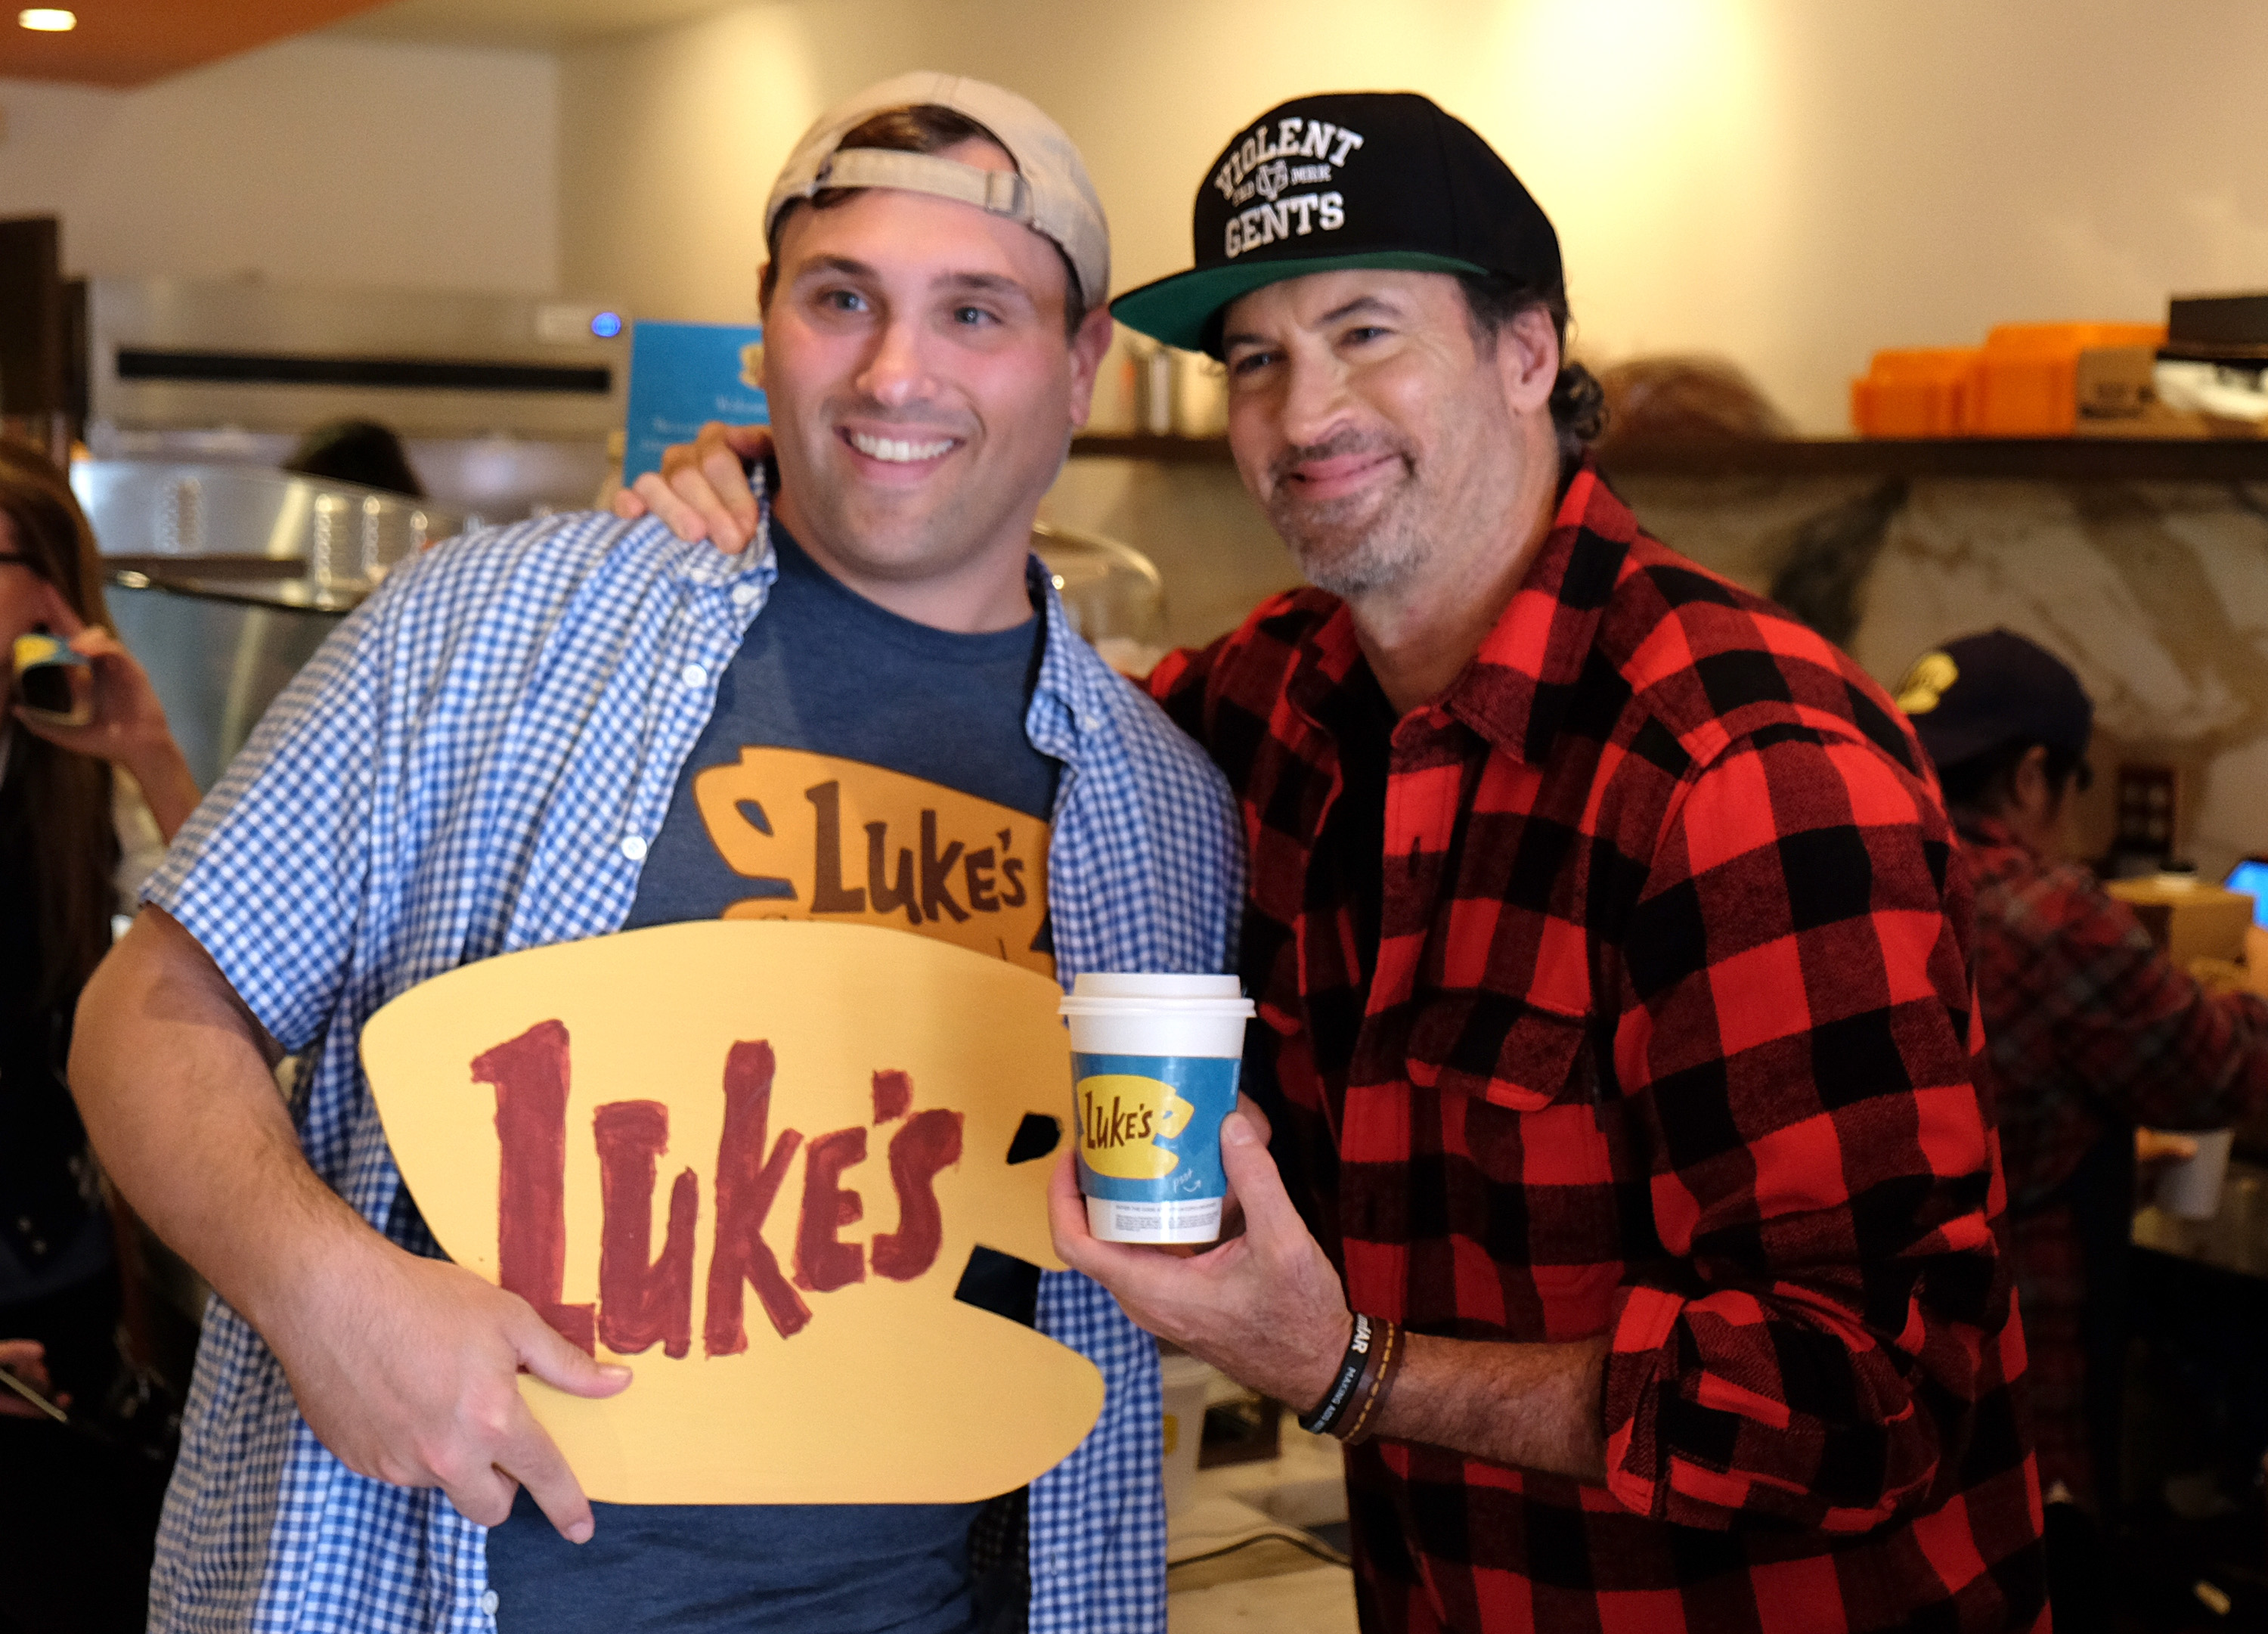 Actor Scott Patterson poses with a fan at a  Gilmore Girls  themed pop-up of Luke's Diner on October 5, 2016 in Beverly Hills, California.